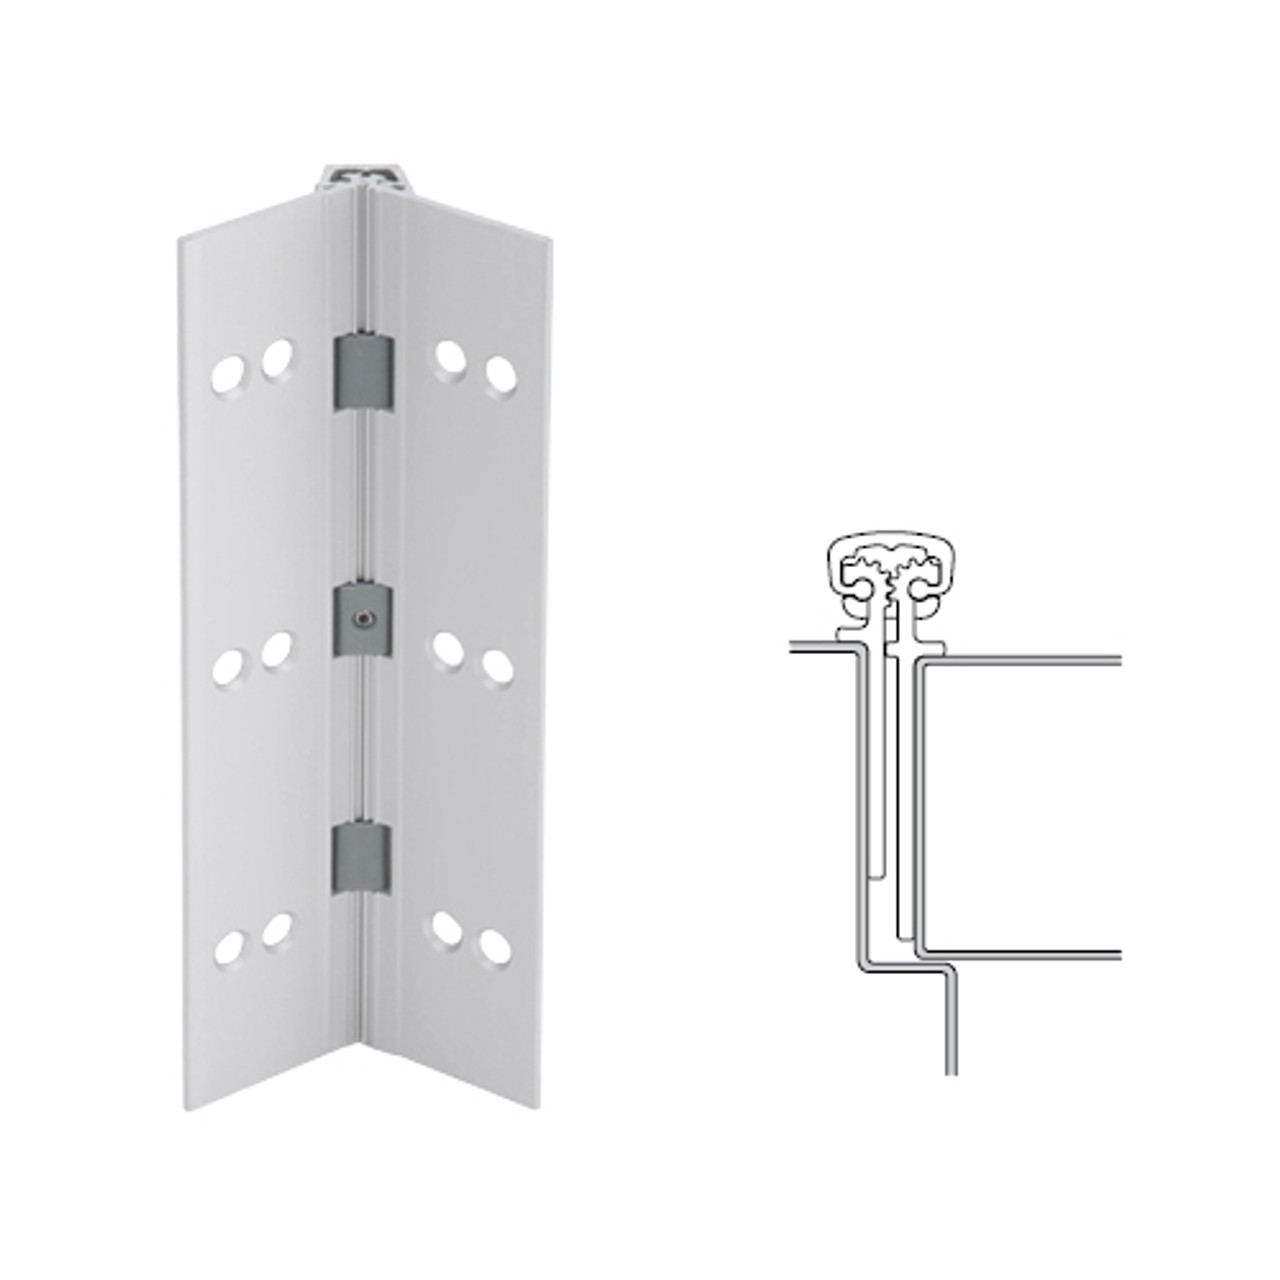 026XY-US28-120-SECHM IVES Full Mortise Continuous Geared Hinges with Security Screws - Hex Pin Drive in Satin Aluminum